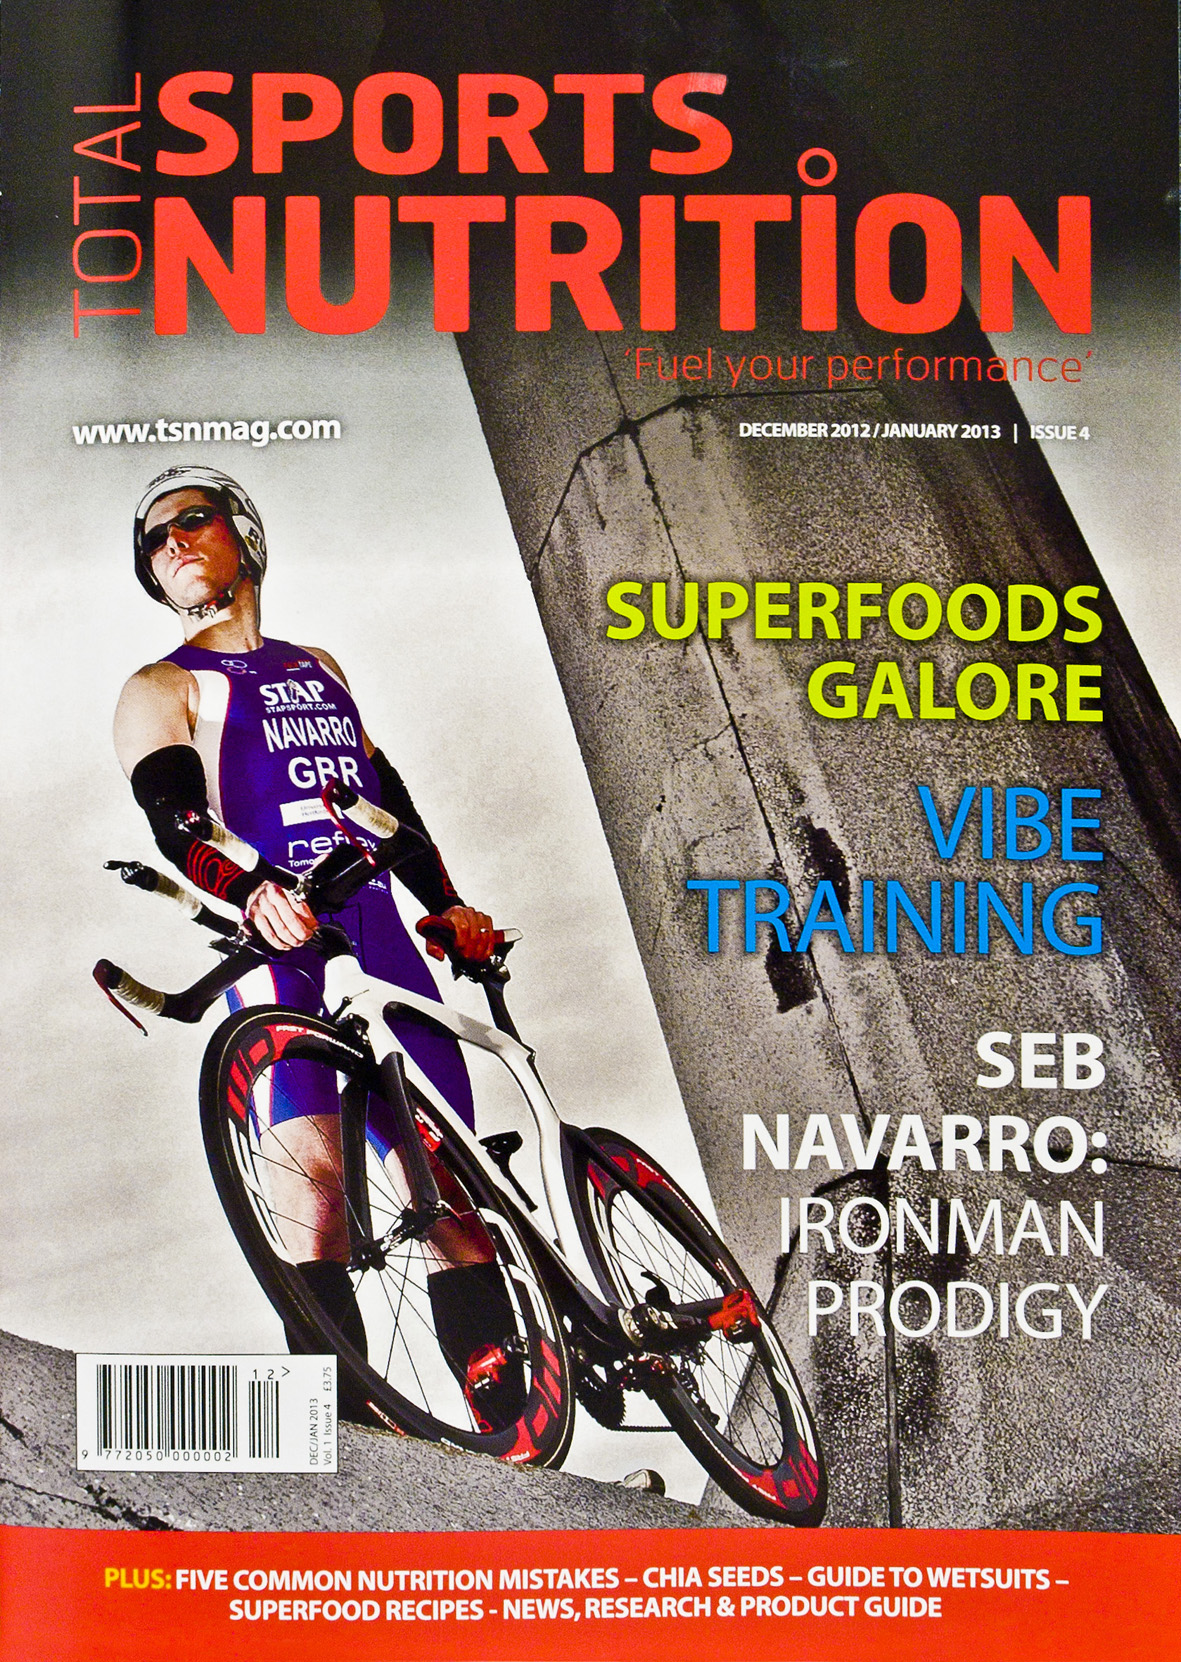 Chia seeds in Total Sports Nutrition